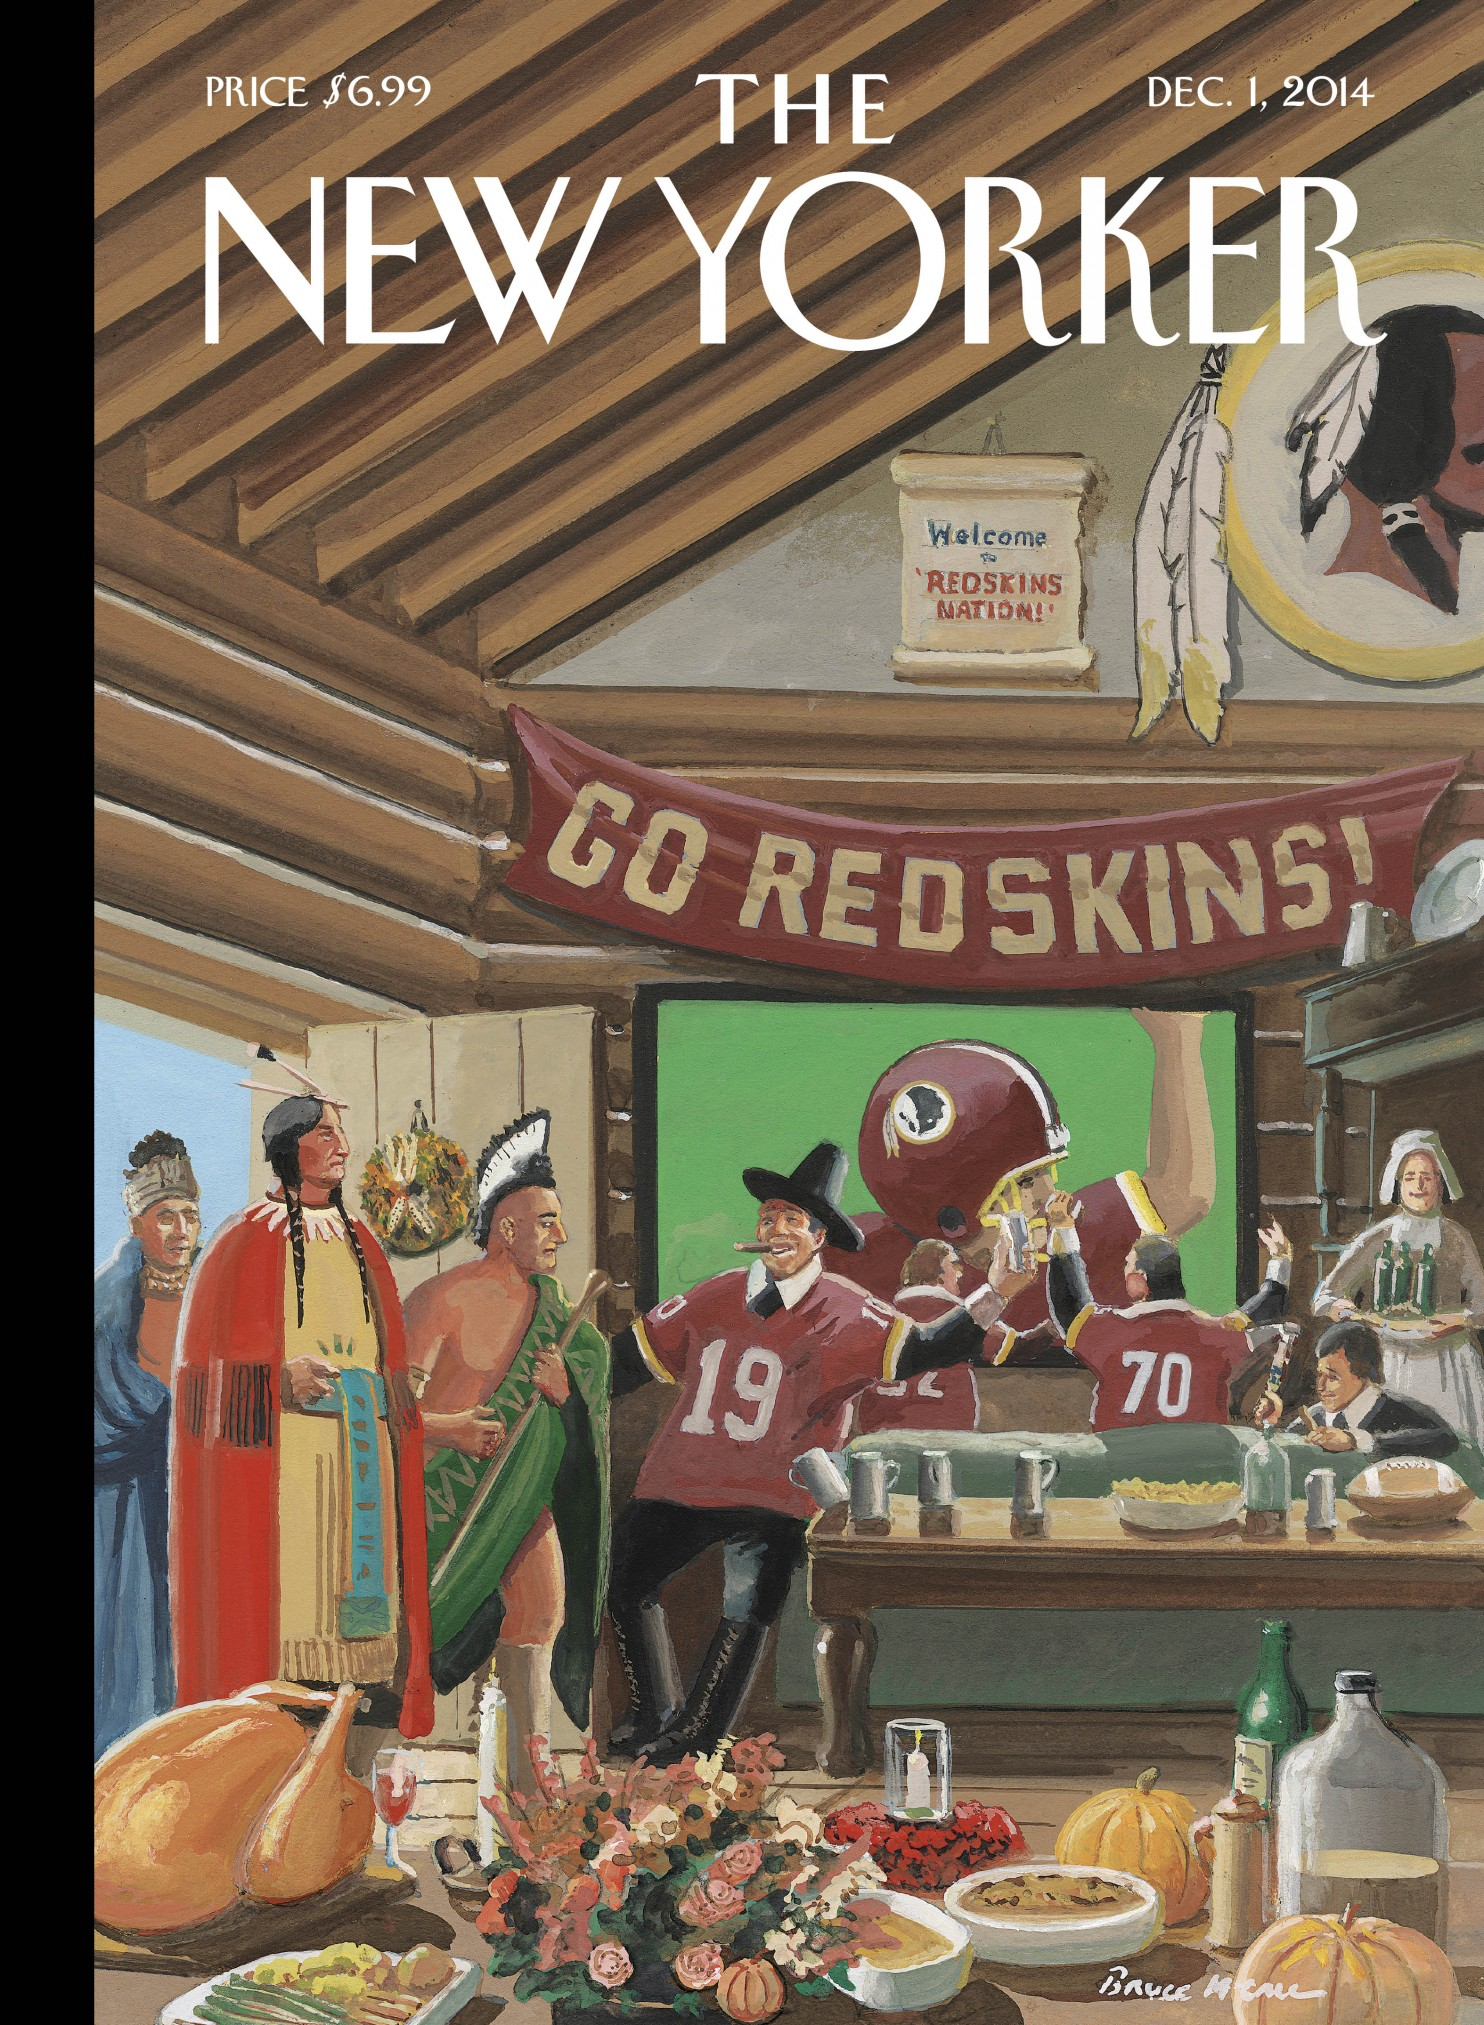 BENEATH THE COVERS The real story behind The New Yorkers ThanksgivingRedskins cover So